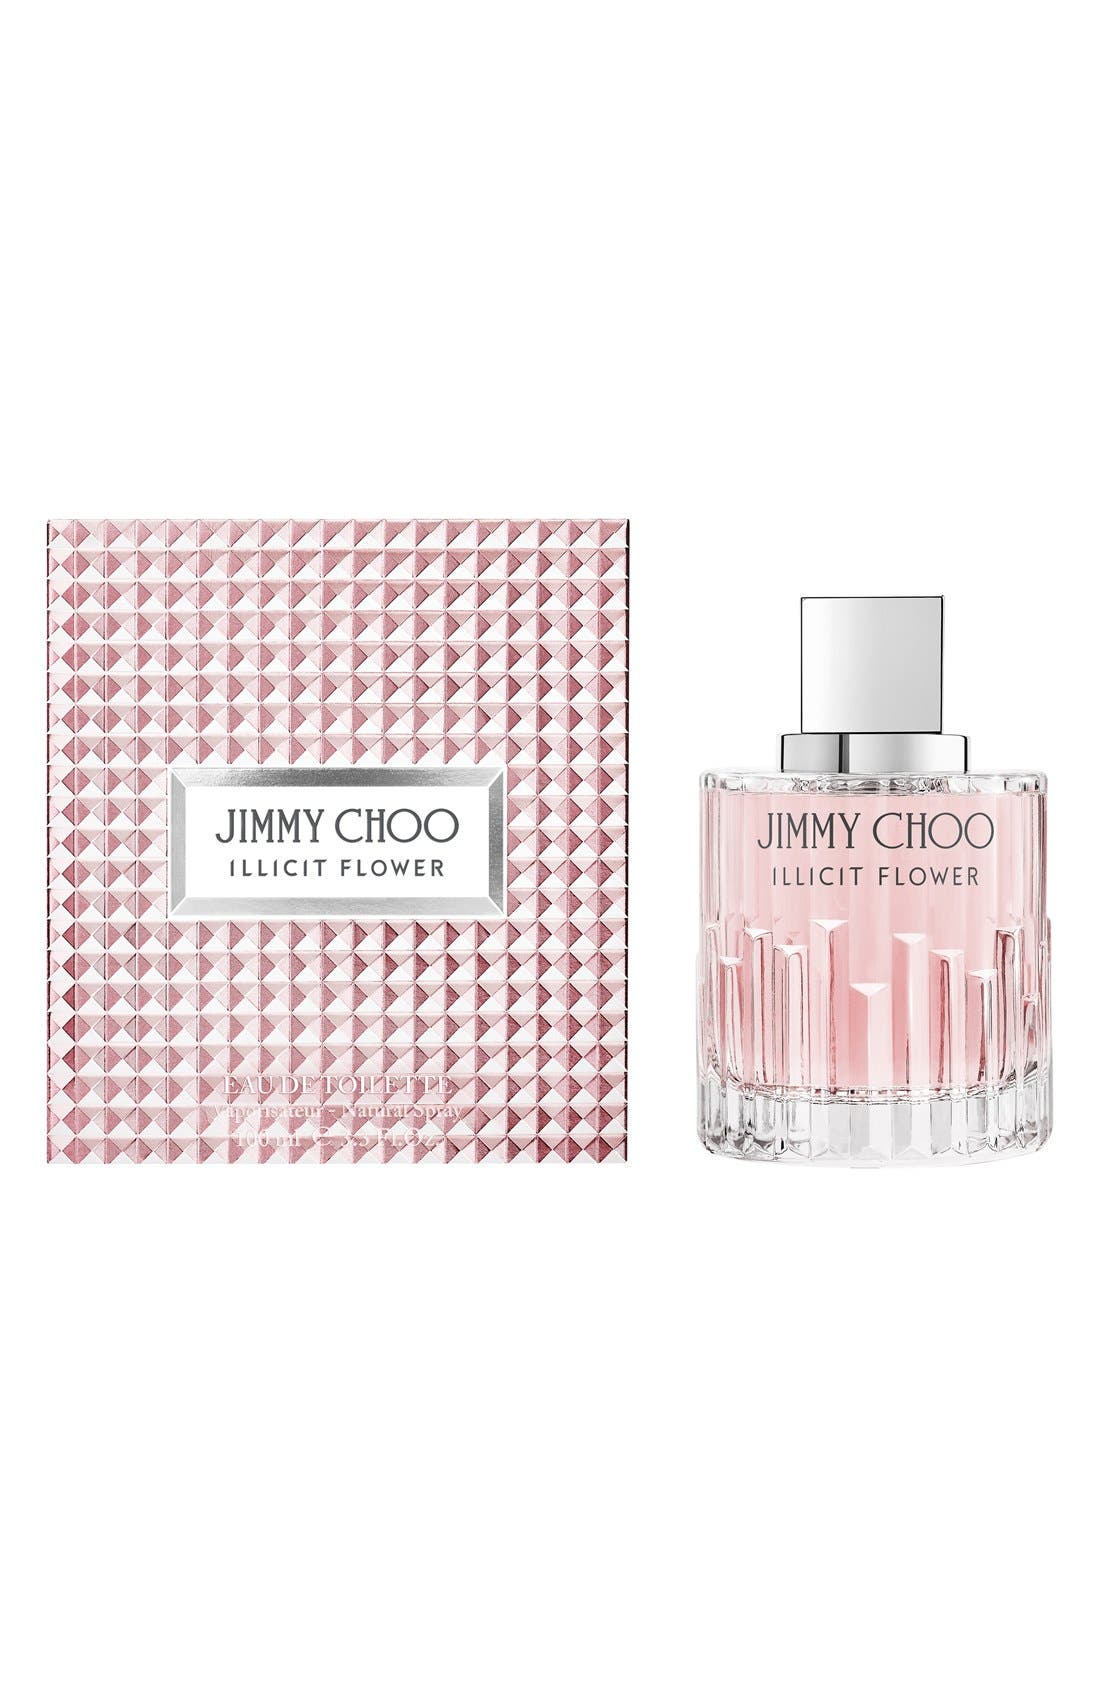 Jimmy Choo 'Illicit Flower' Eau de Toilette